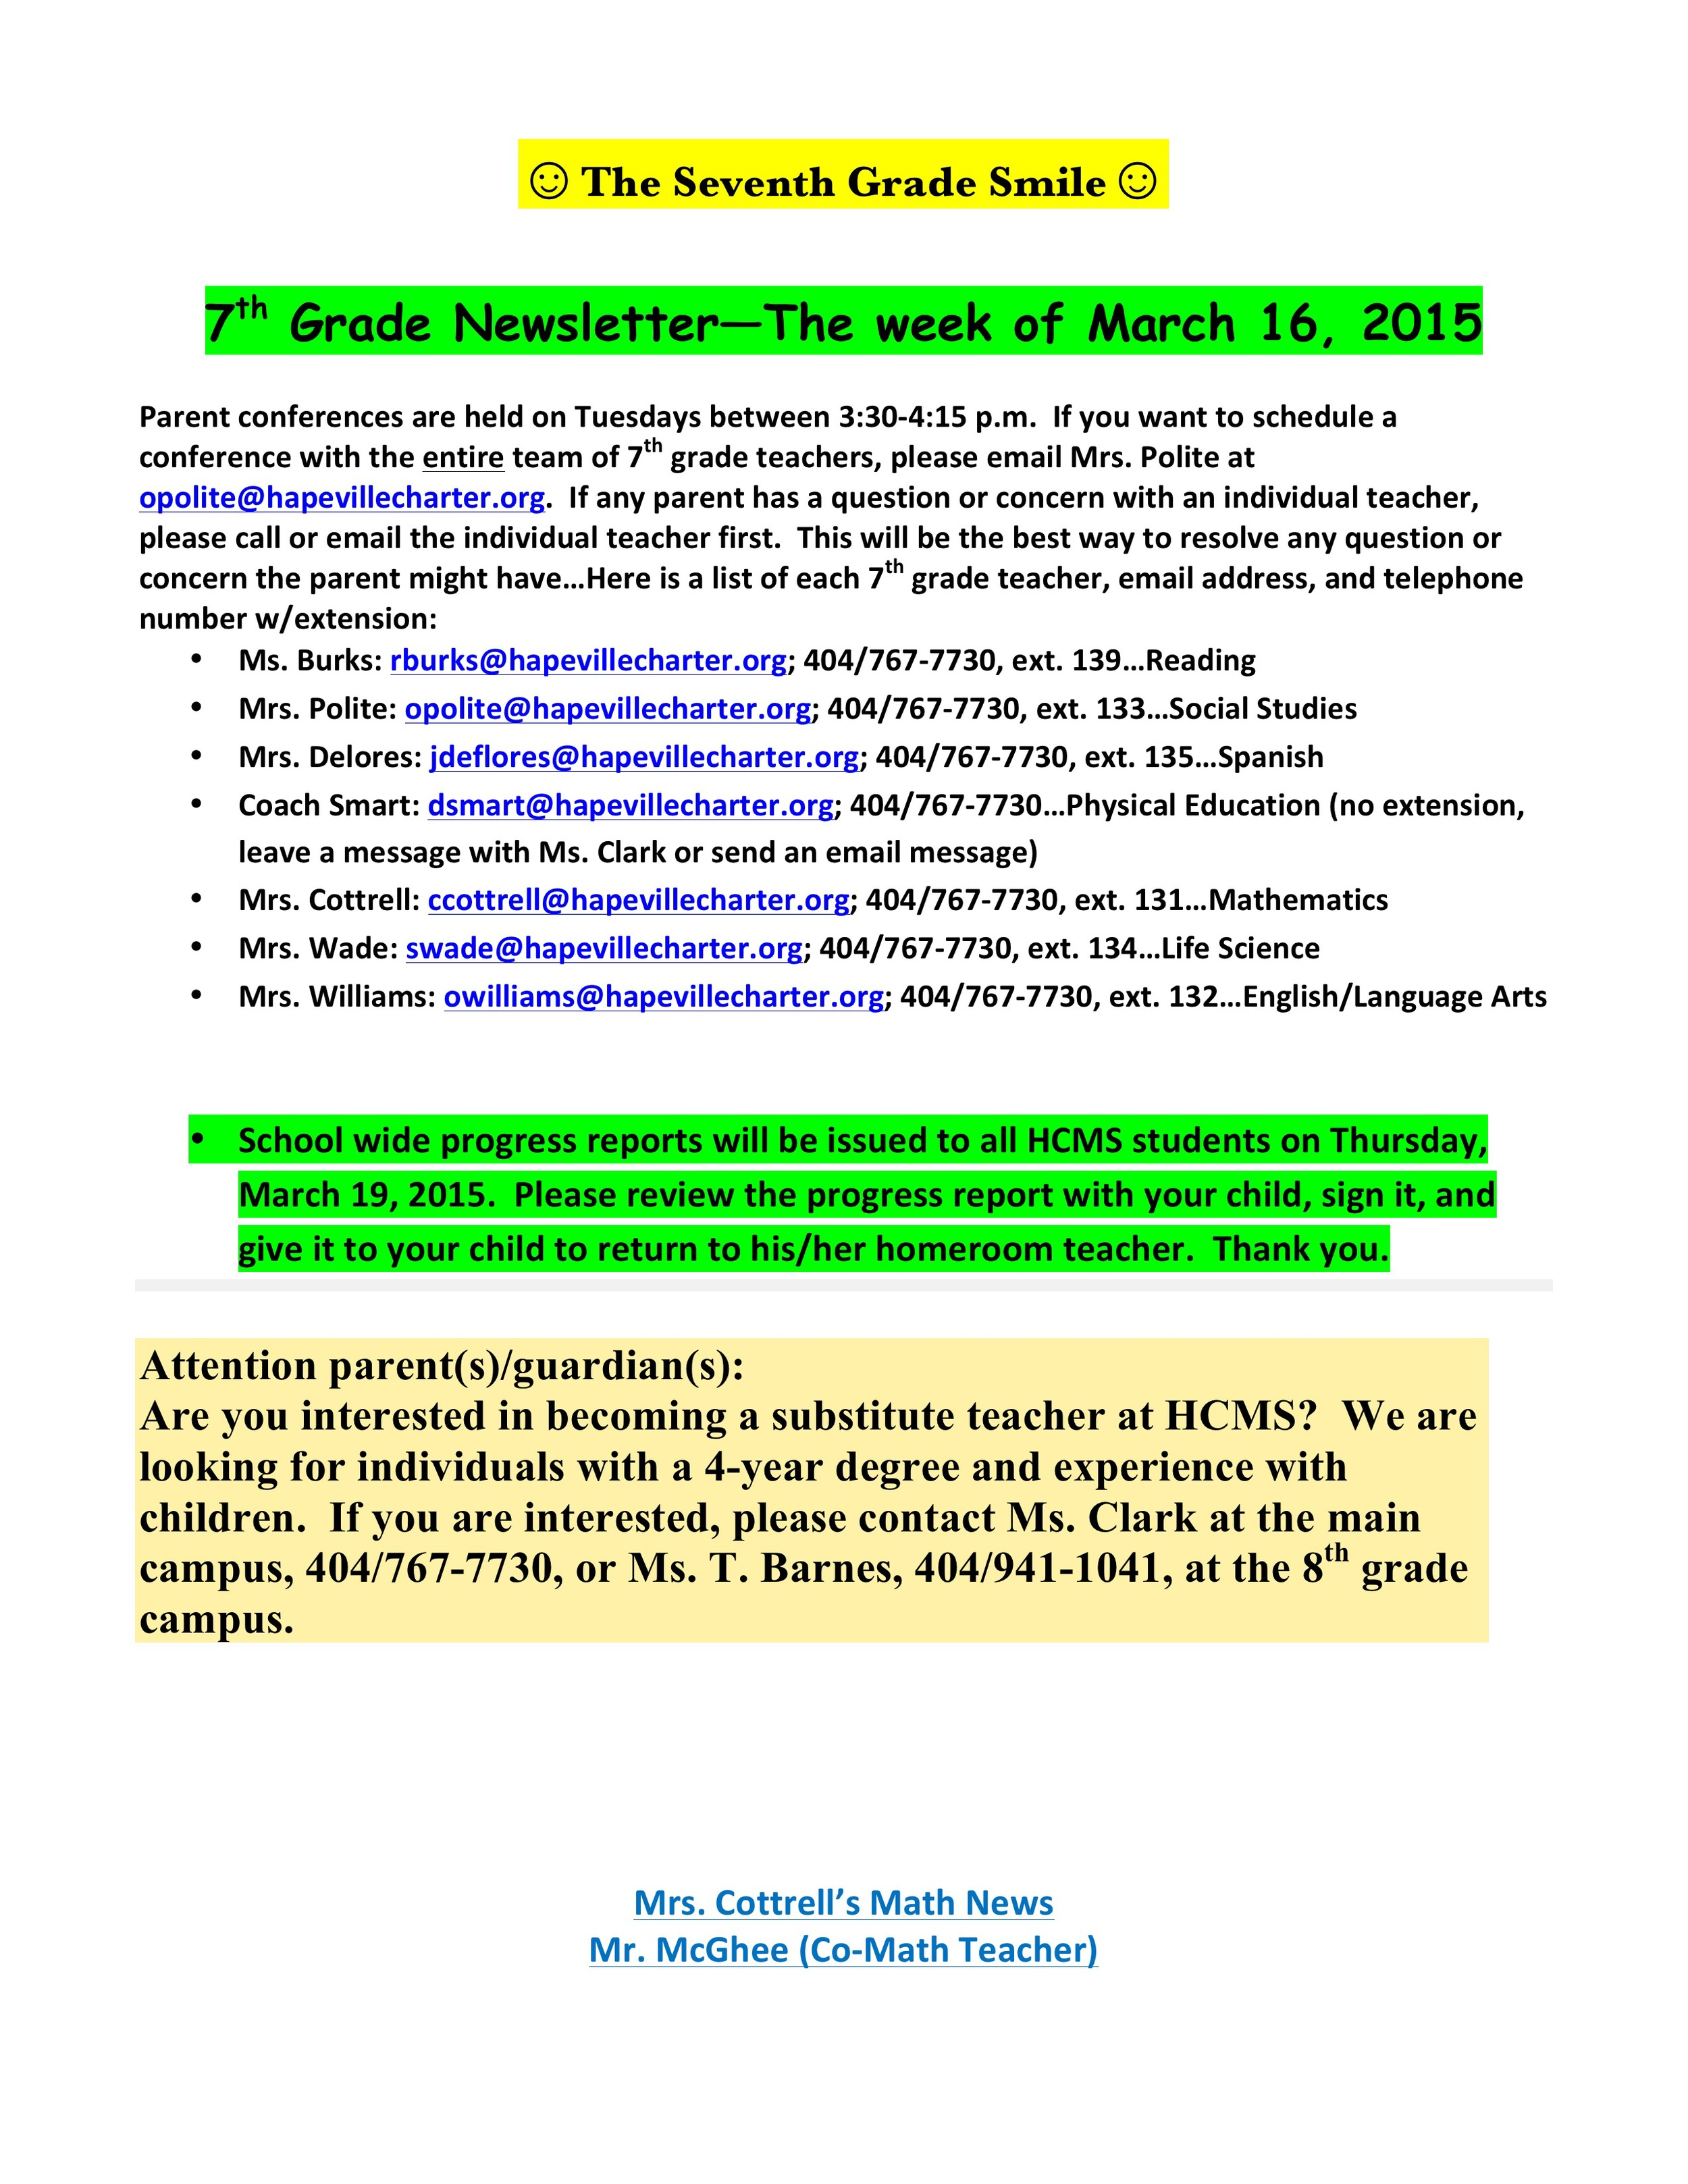 Newsletter Image7th grade march 16.jpeg